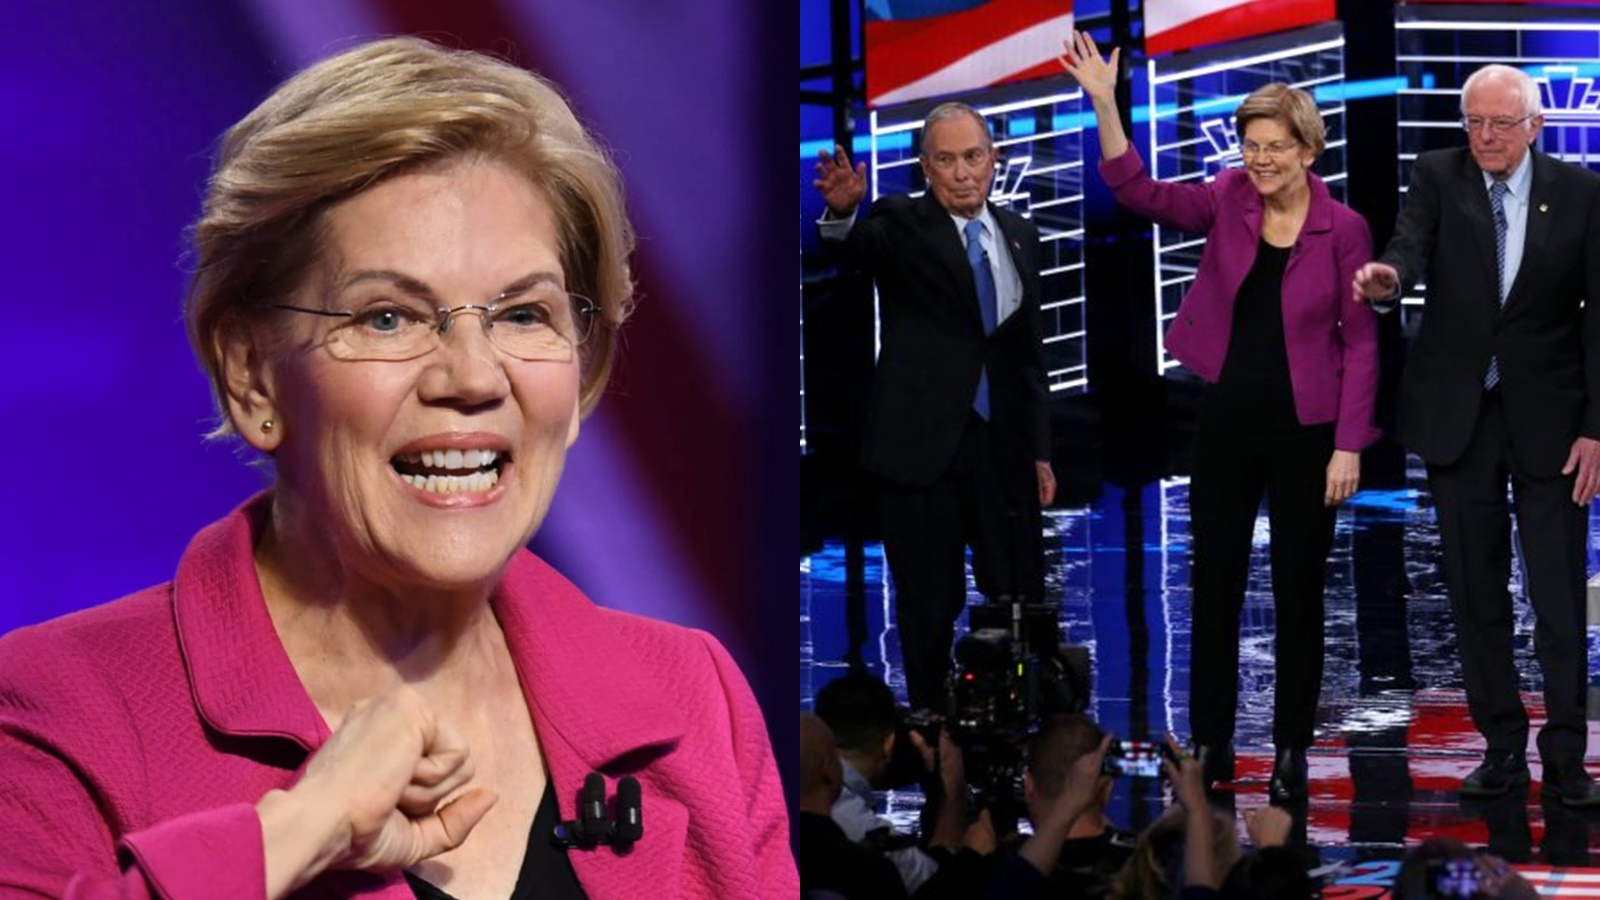 In the fierce 2020 Democratic presidential debate, 1 winner and 5 losers